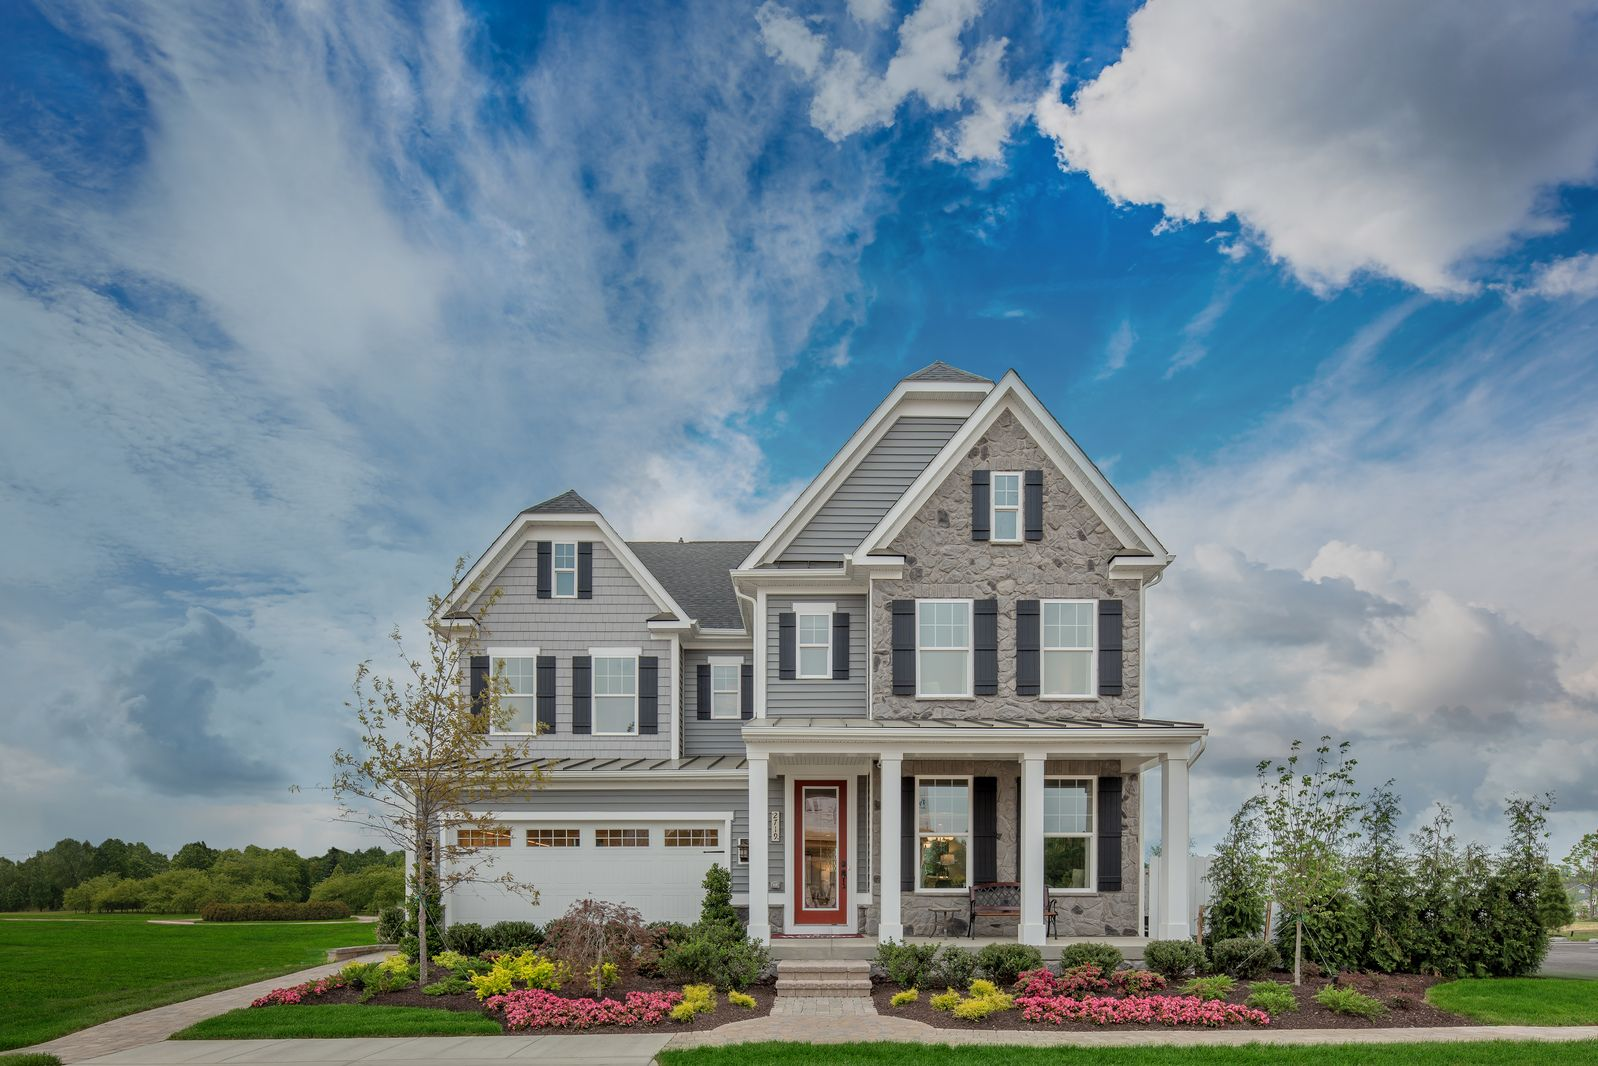 LUXURY MEETS CONVENIENCE IN CLARKSBURG:Discover our boutique collection of modern single-family homes and first-floor owner's suite homes in an amazing Clarksburg location!Schedule a visit today to learn more!